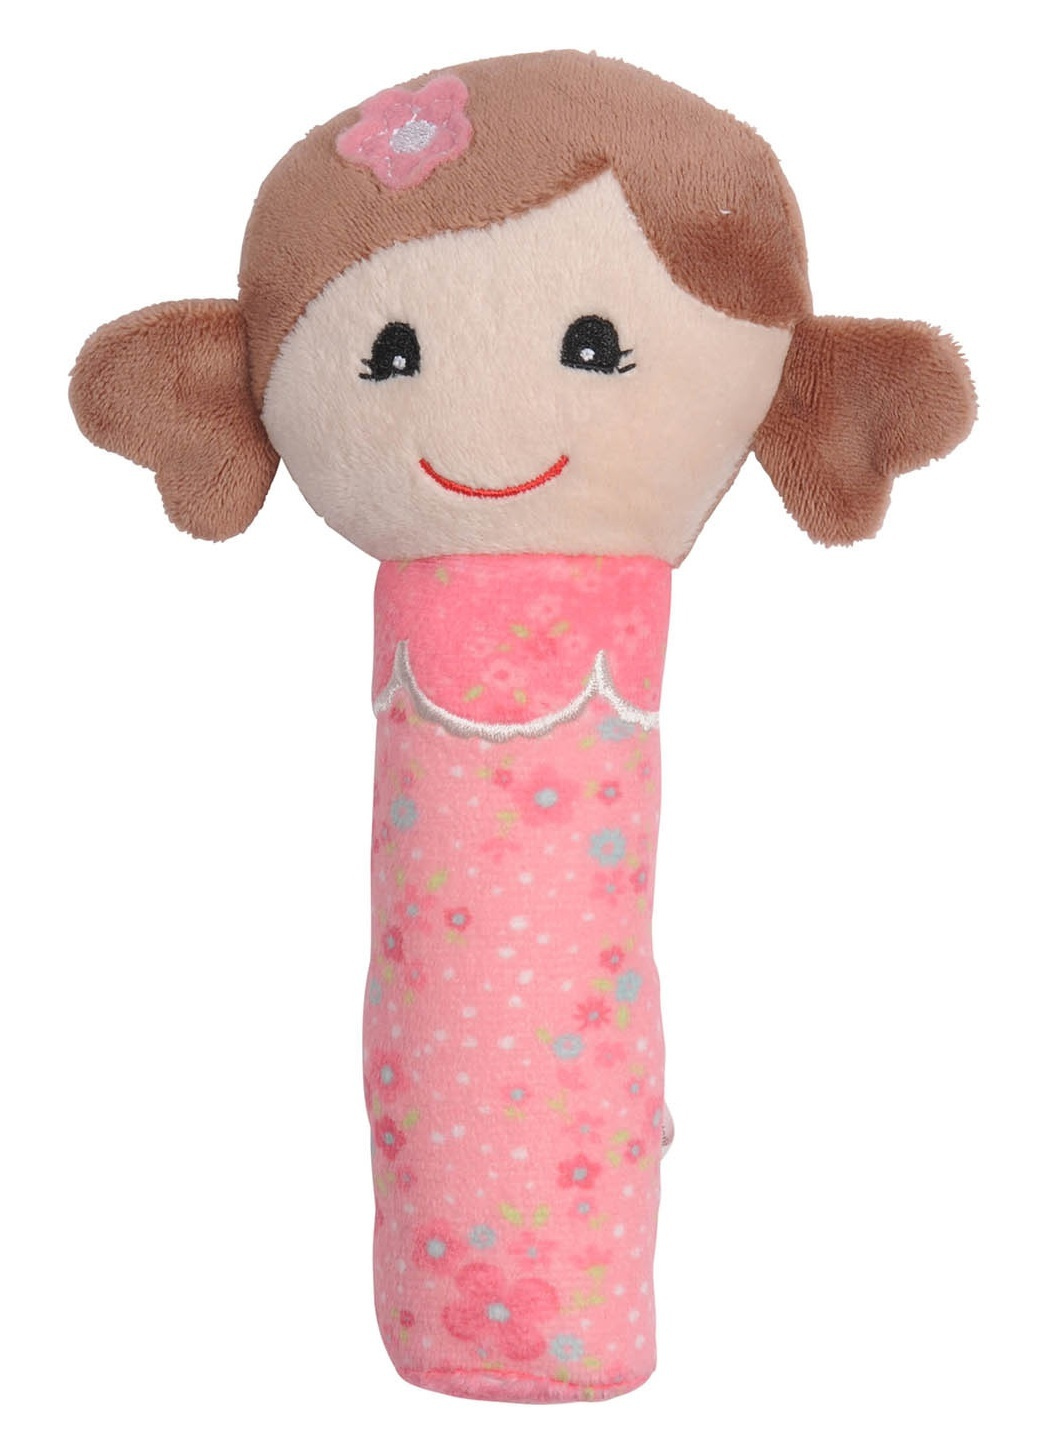 Tiger Tribe: Baby Doll Squeaker - Emily image